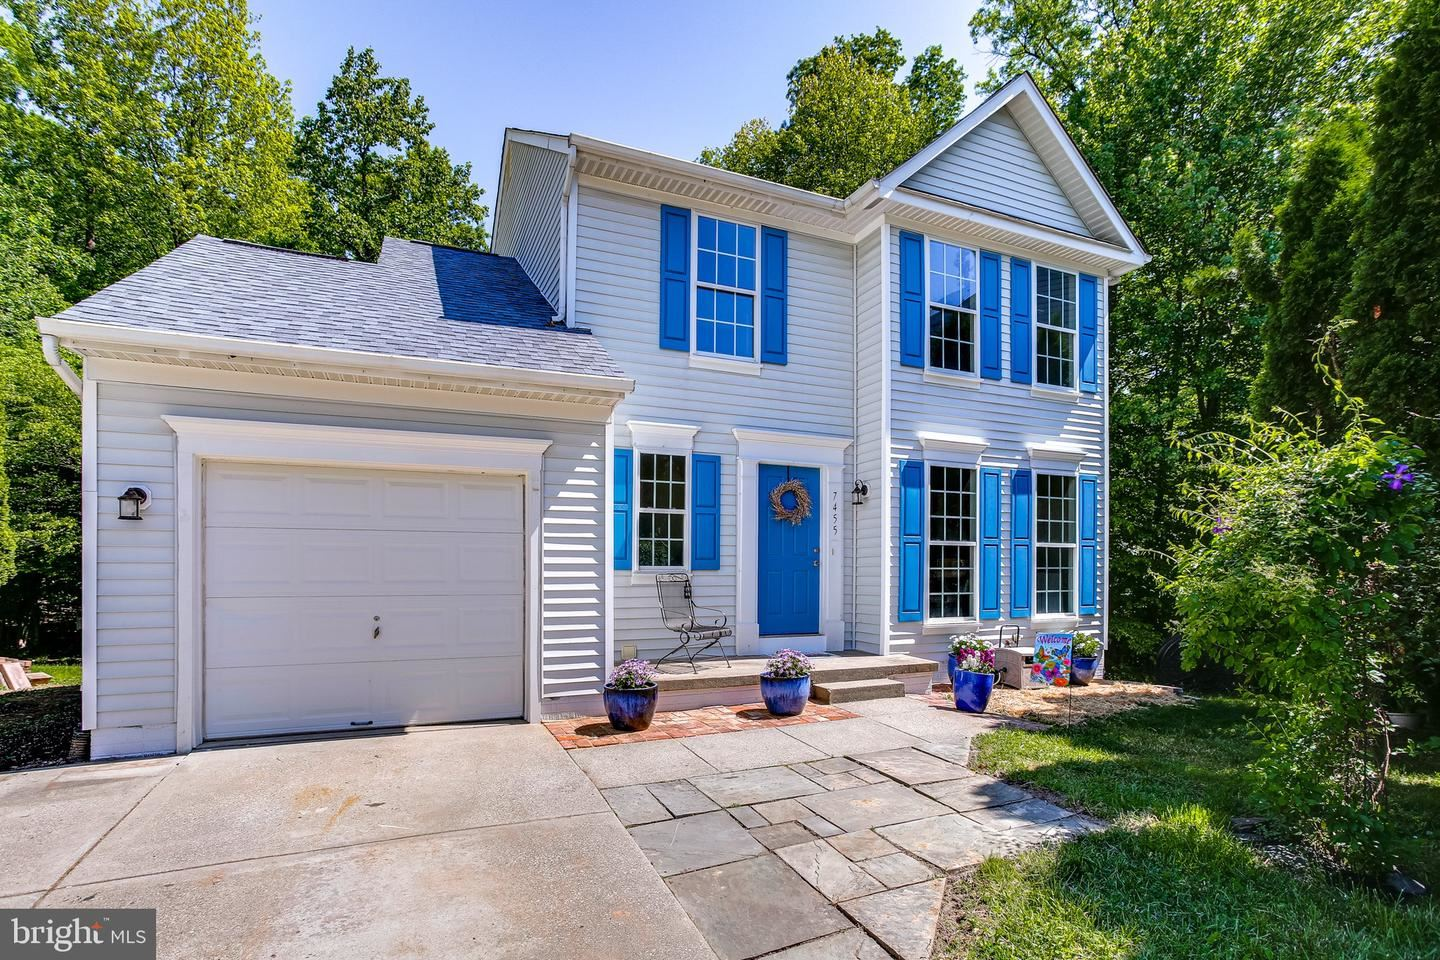 7455 MERRYMAKER WAY, Elkridge, MD 21075 - MLS#: MDHW294098